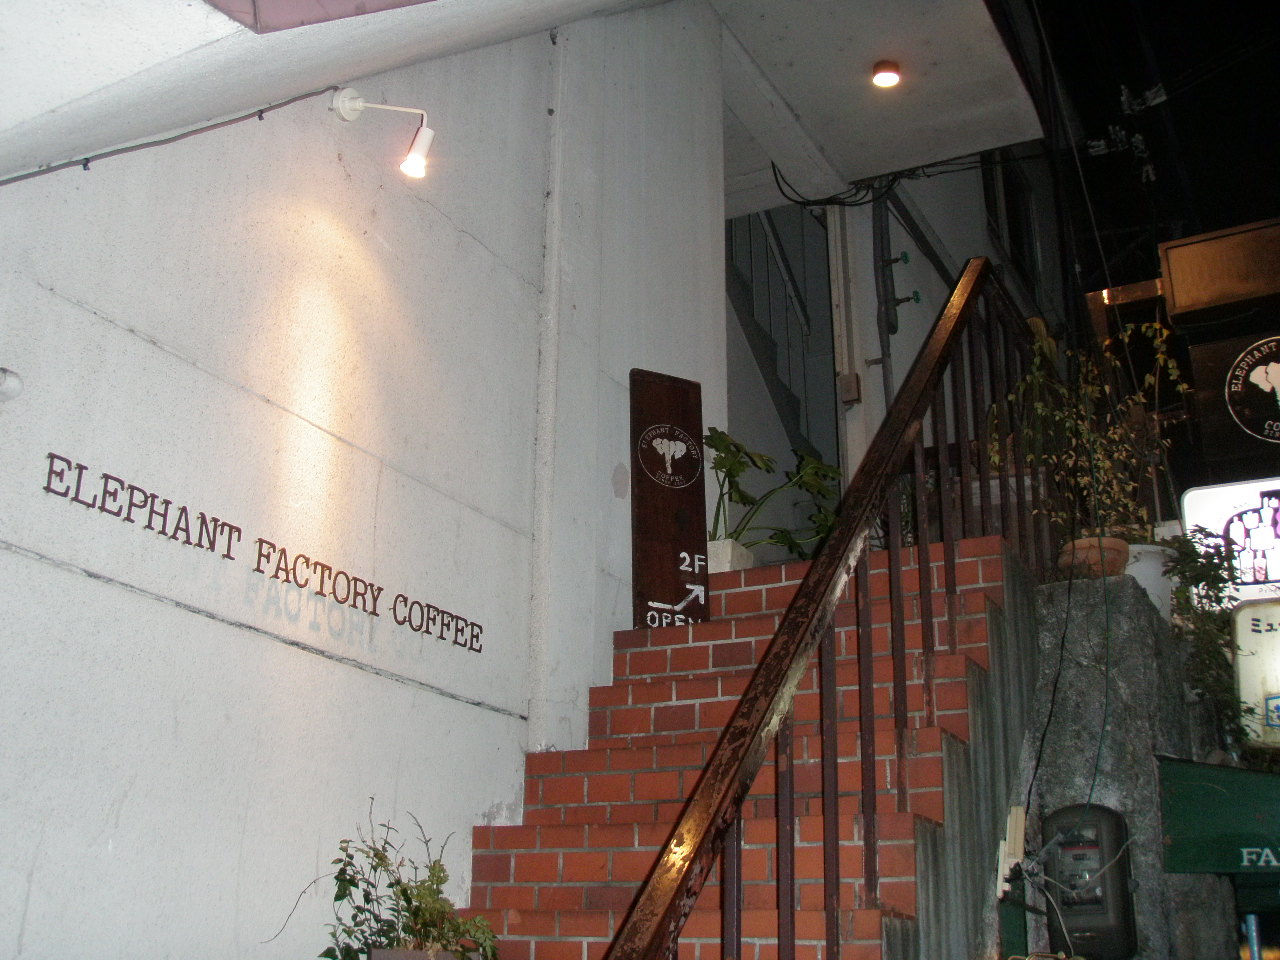 ELEPHANT FACTORY COFFEE